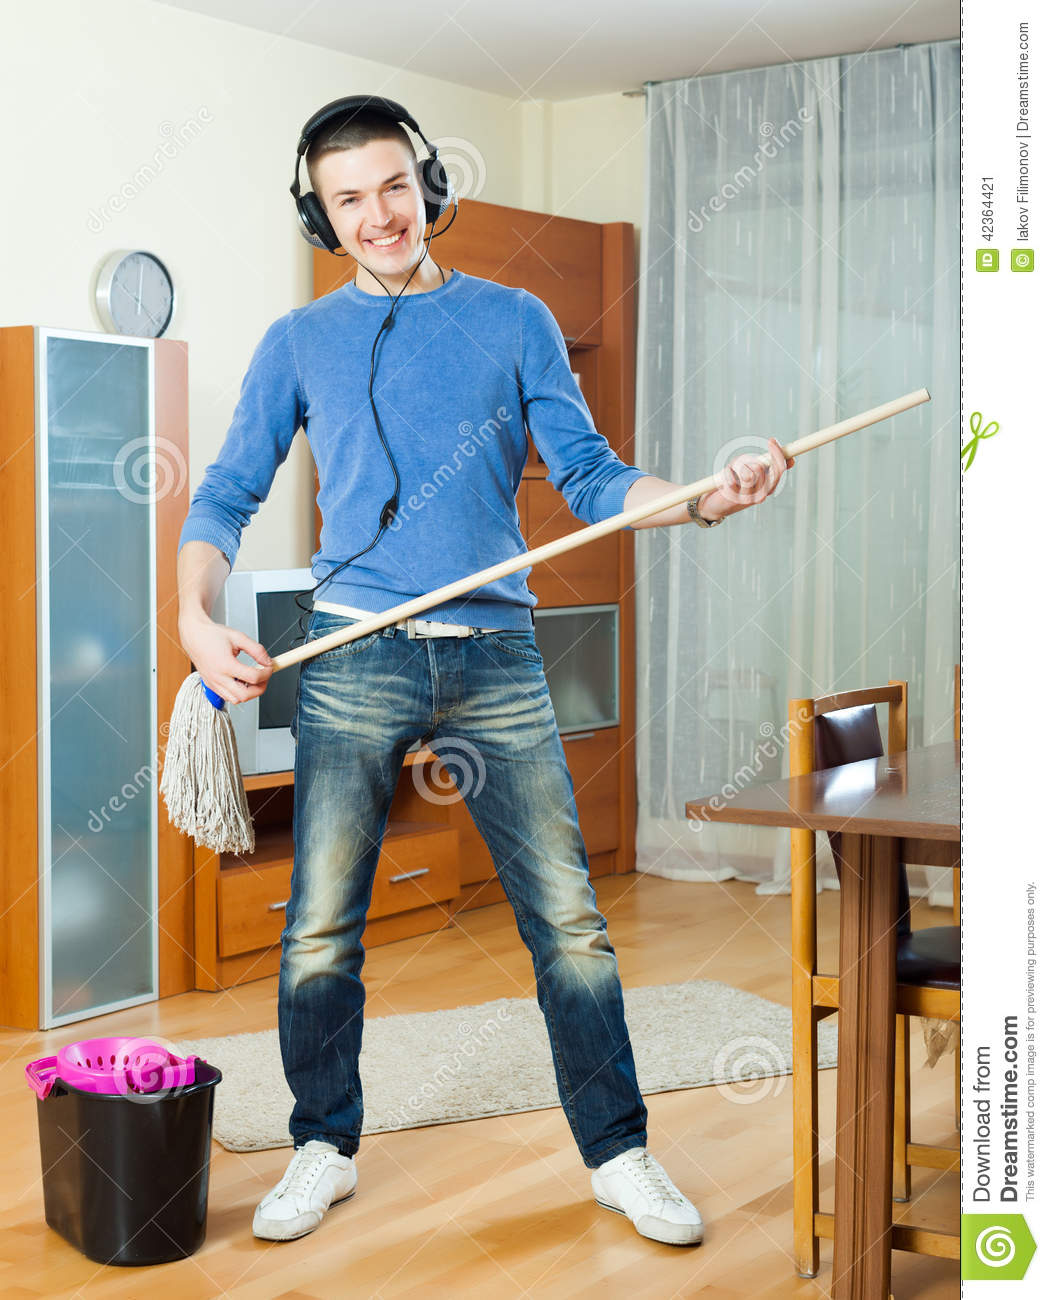 happy-man-cleaning-his-house-mop-living-